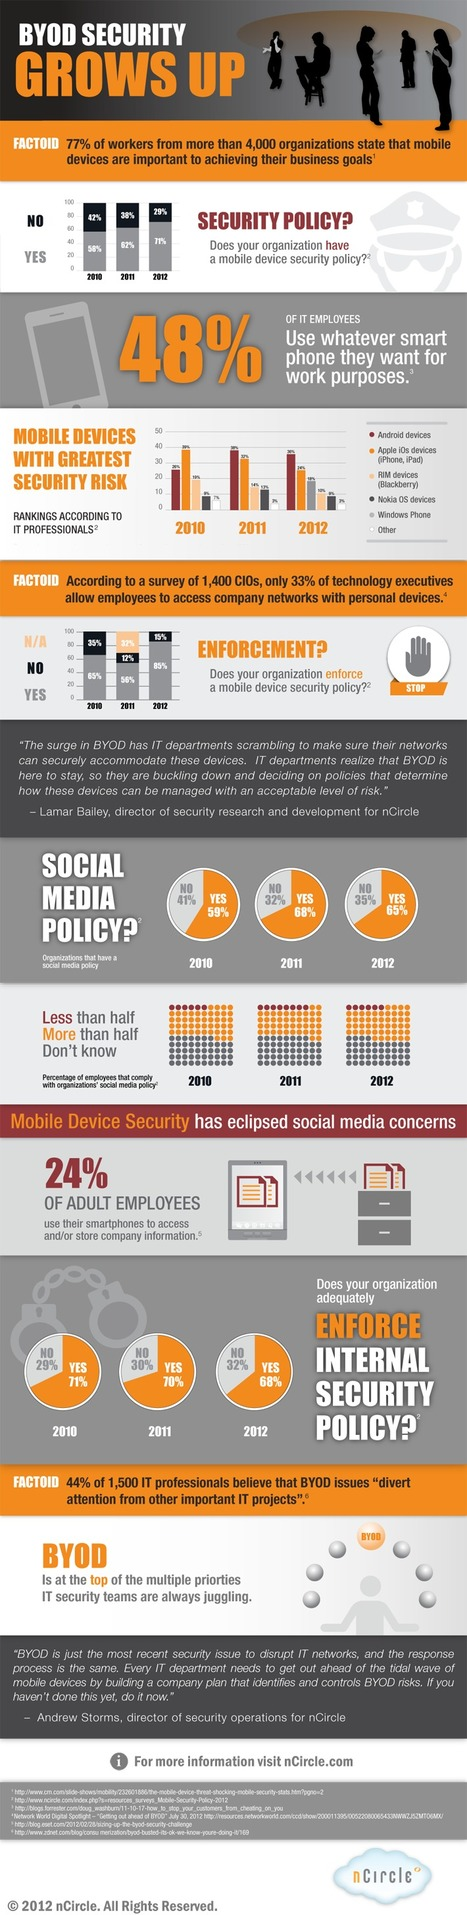 BYOD-2012 Mobile Device Security Policy Survey   iEduc   Scoop.it